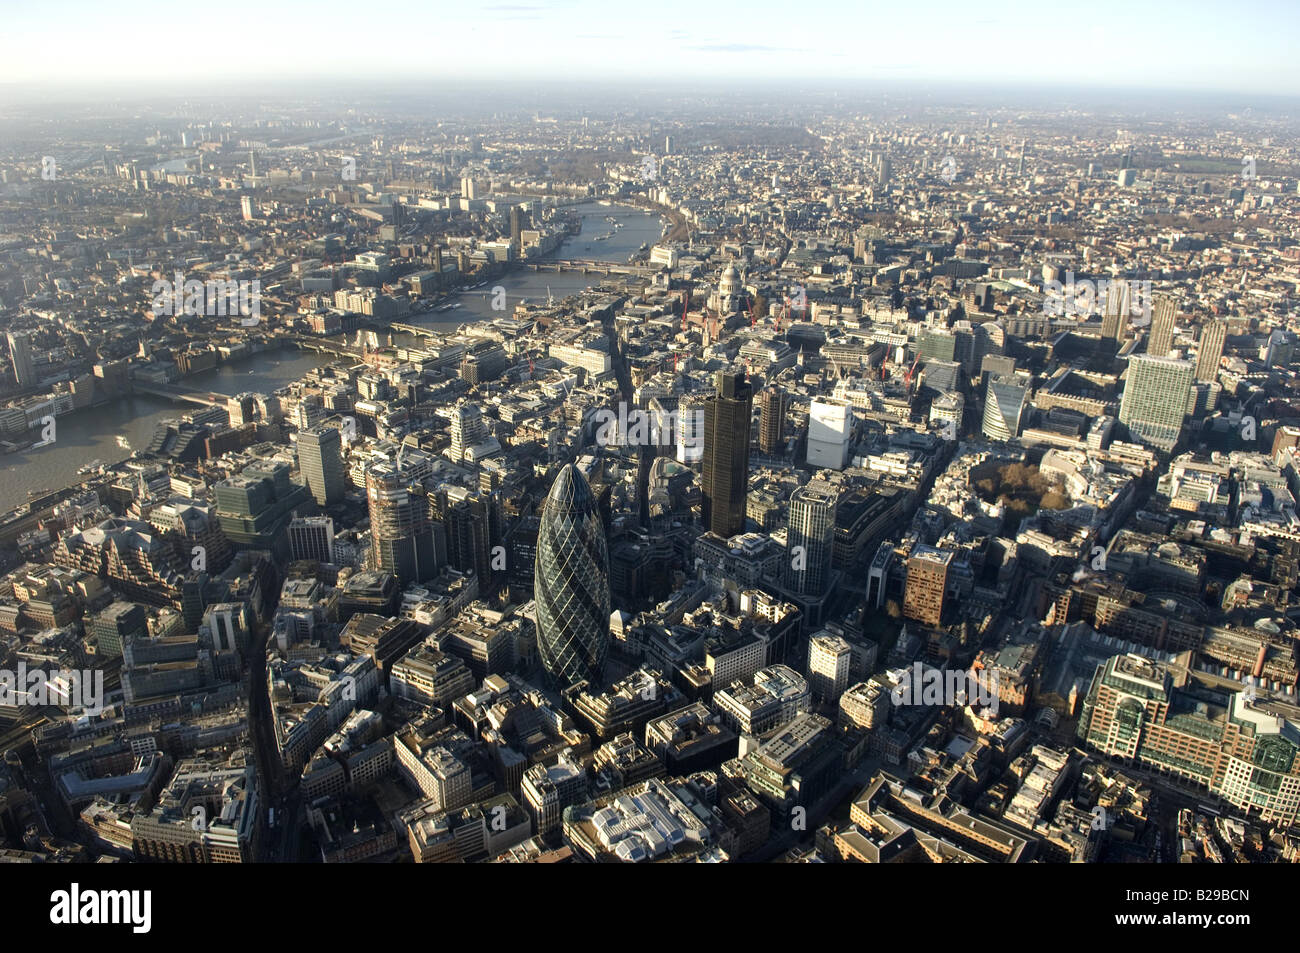 The City of London Date 12 03 2008 Ref ZB648 111149 0056 COMPULSORY CREDIT World Pictures Photoshot - Stock Image